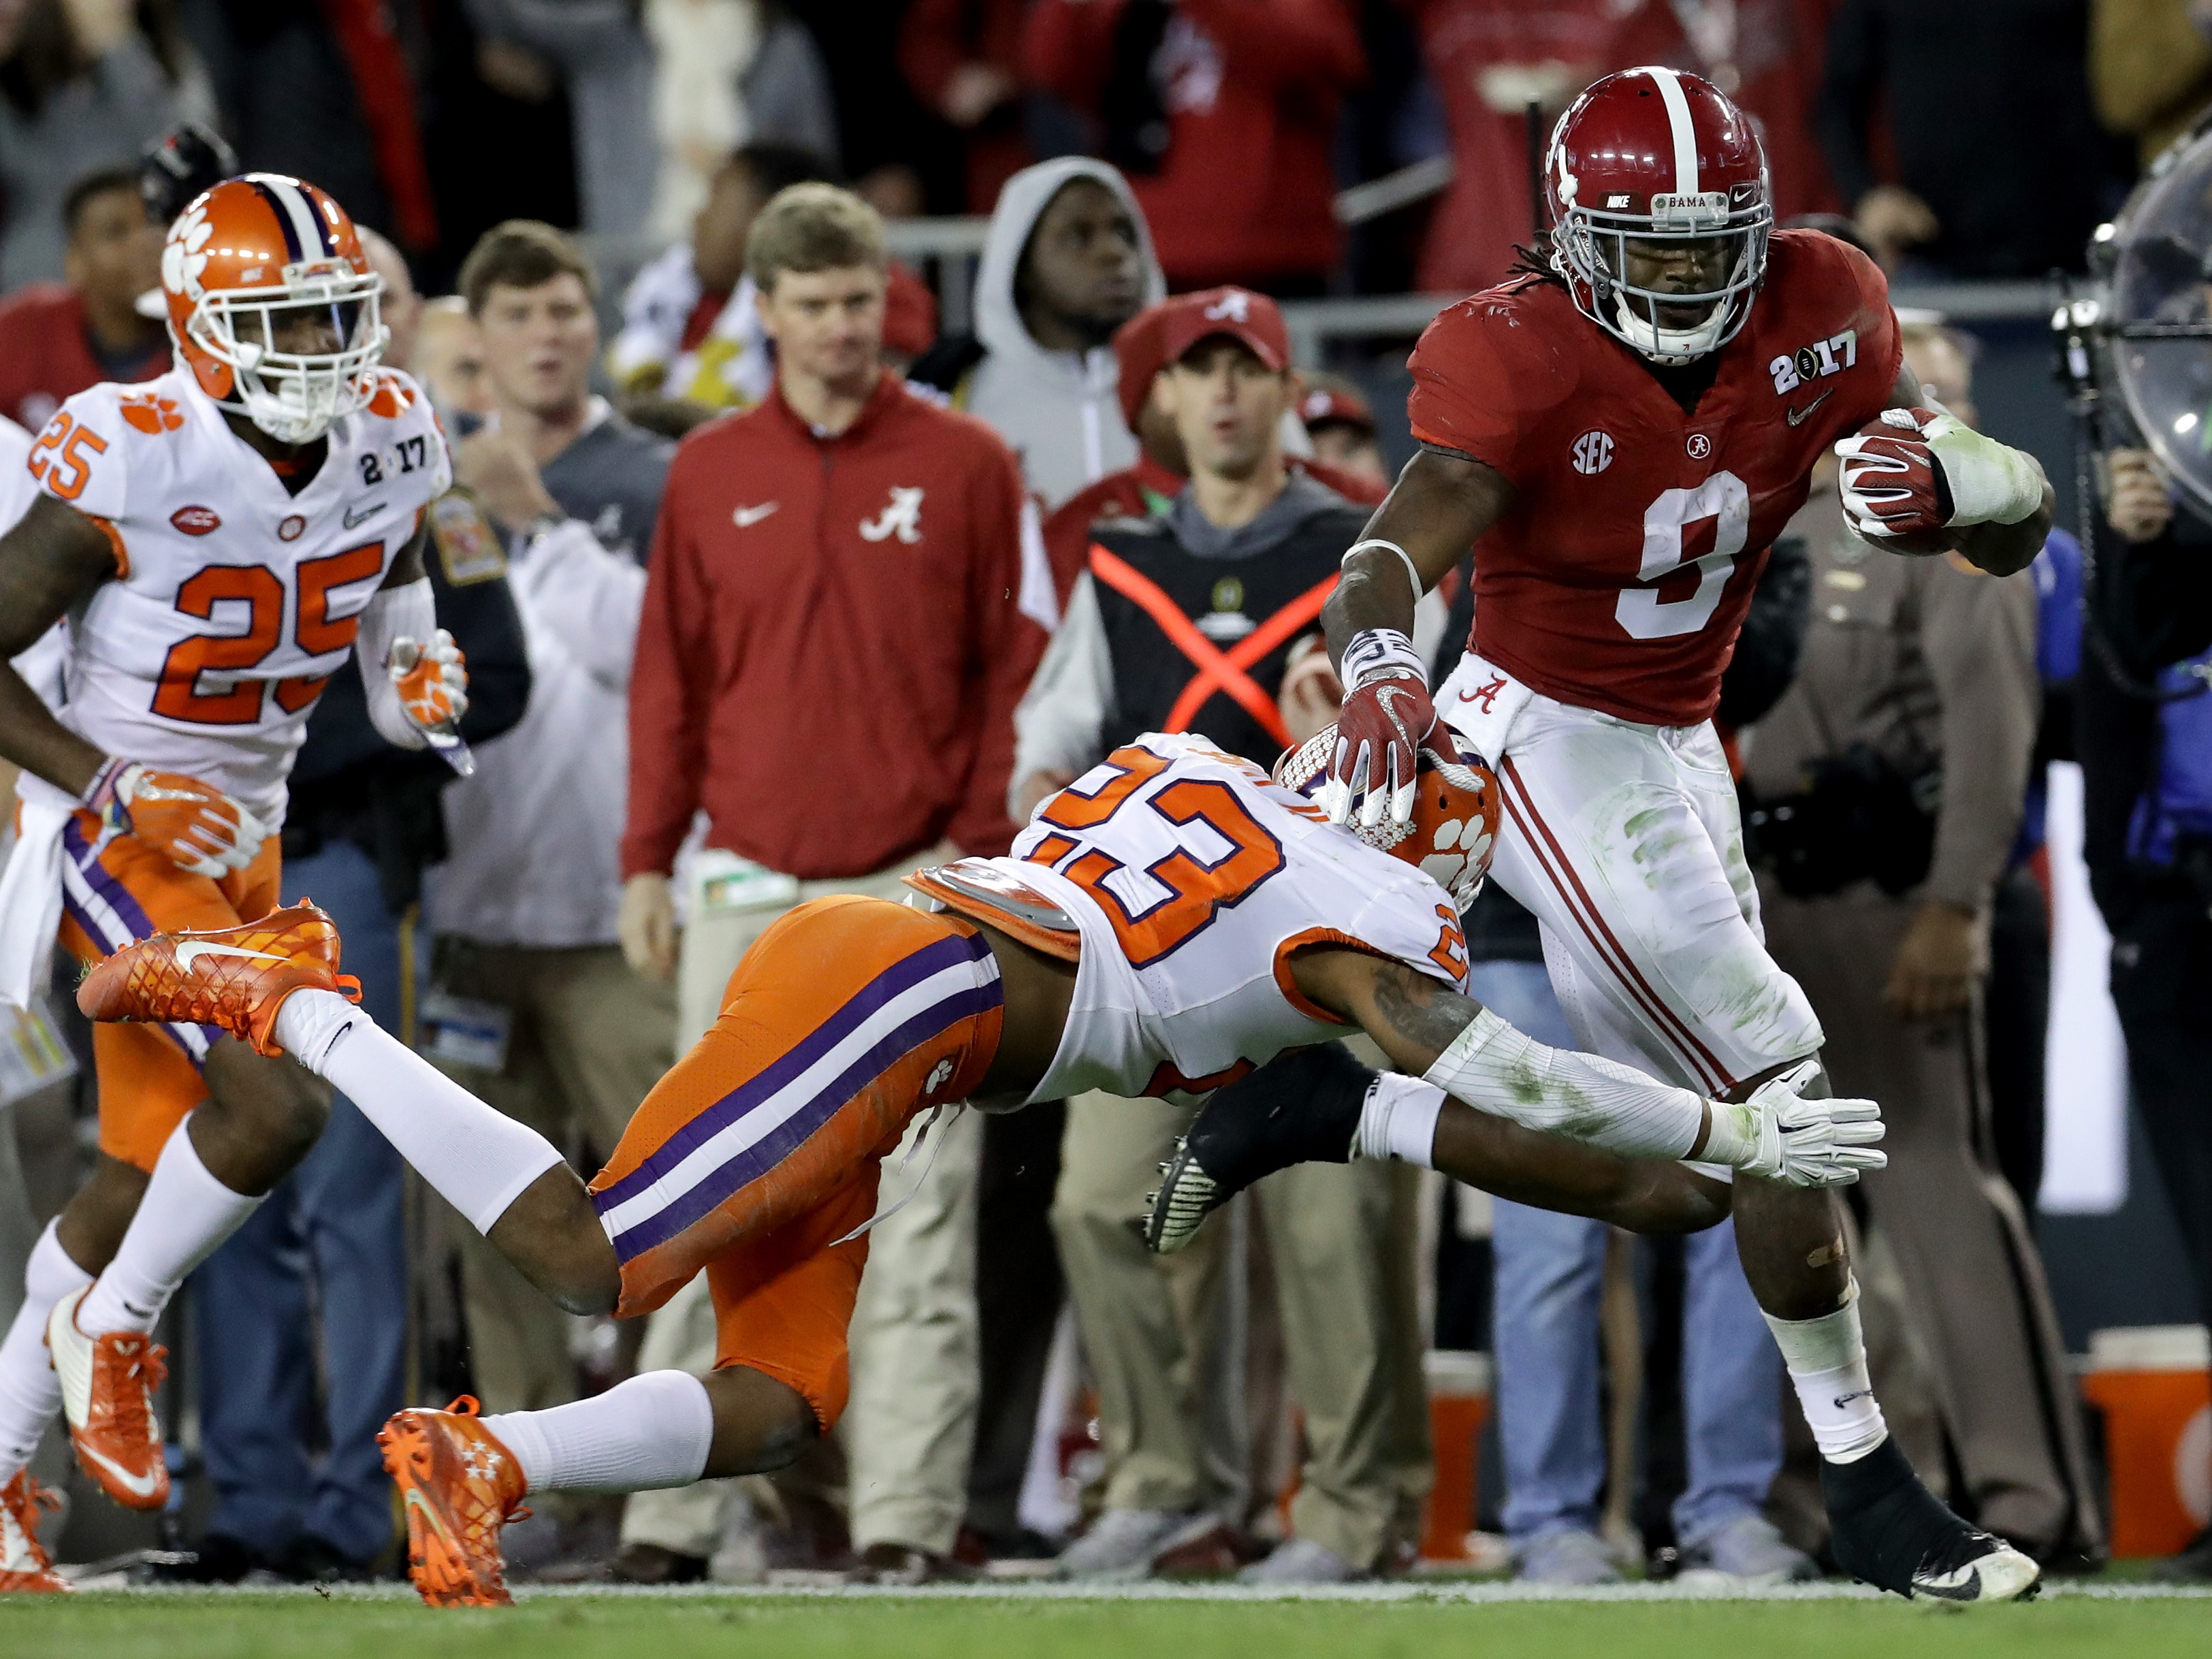 Sophomore running back Bo Scarbrough of the Alabama Crimson Tide rushes for a 37-yard touchdown Monday during the second quarter in the 2017 College Football Playoff National Championship Game against the Clemson Tigers in Tampa, Fla. Scarborough had two long touchdown runs, after getting two long scores against Washington in the semifinal game. (Ronald Martinez/Getty Images)